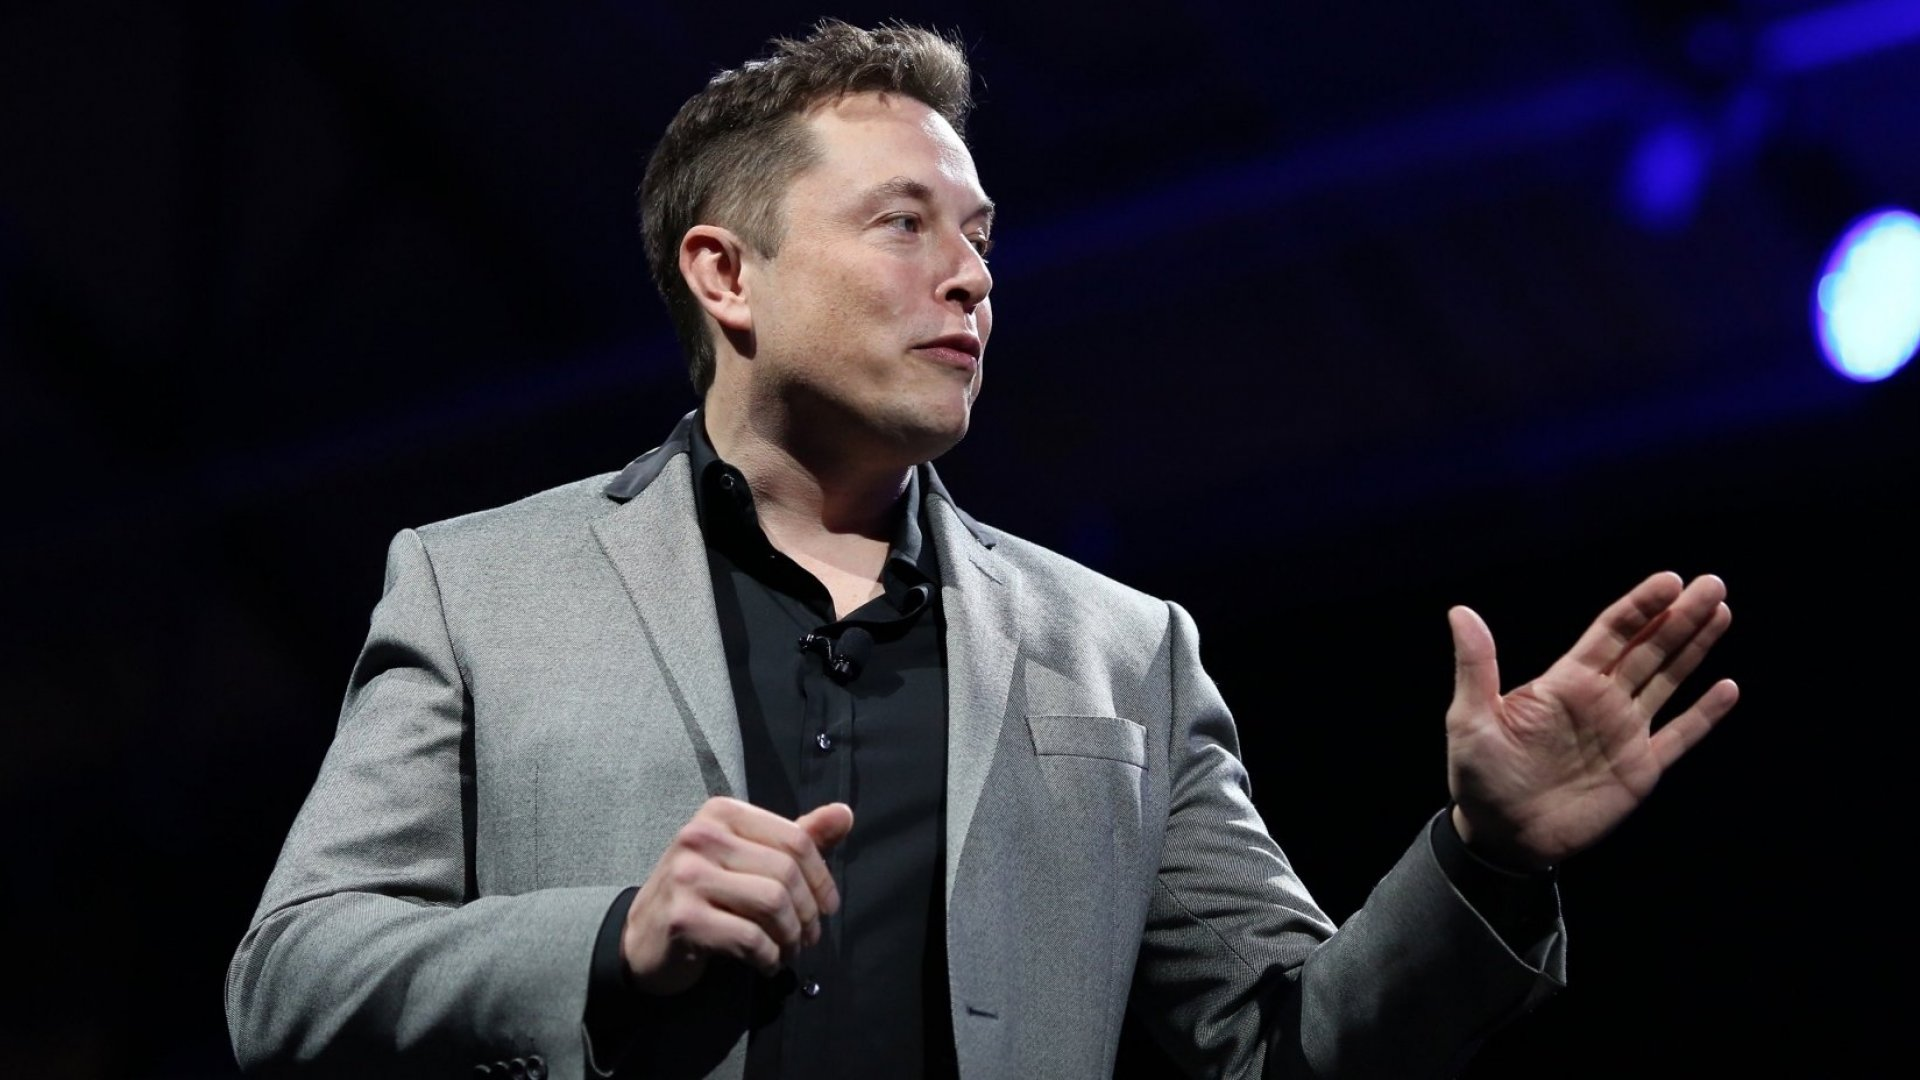 Want to Get Smarter? Elon Musk Recommends These 12 Books